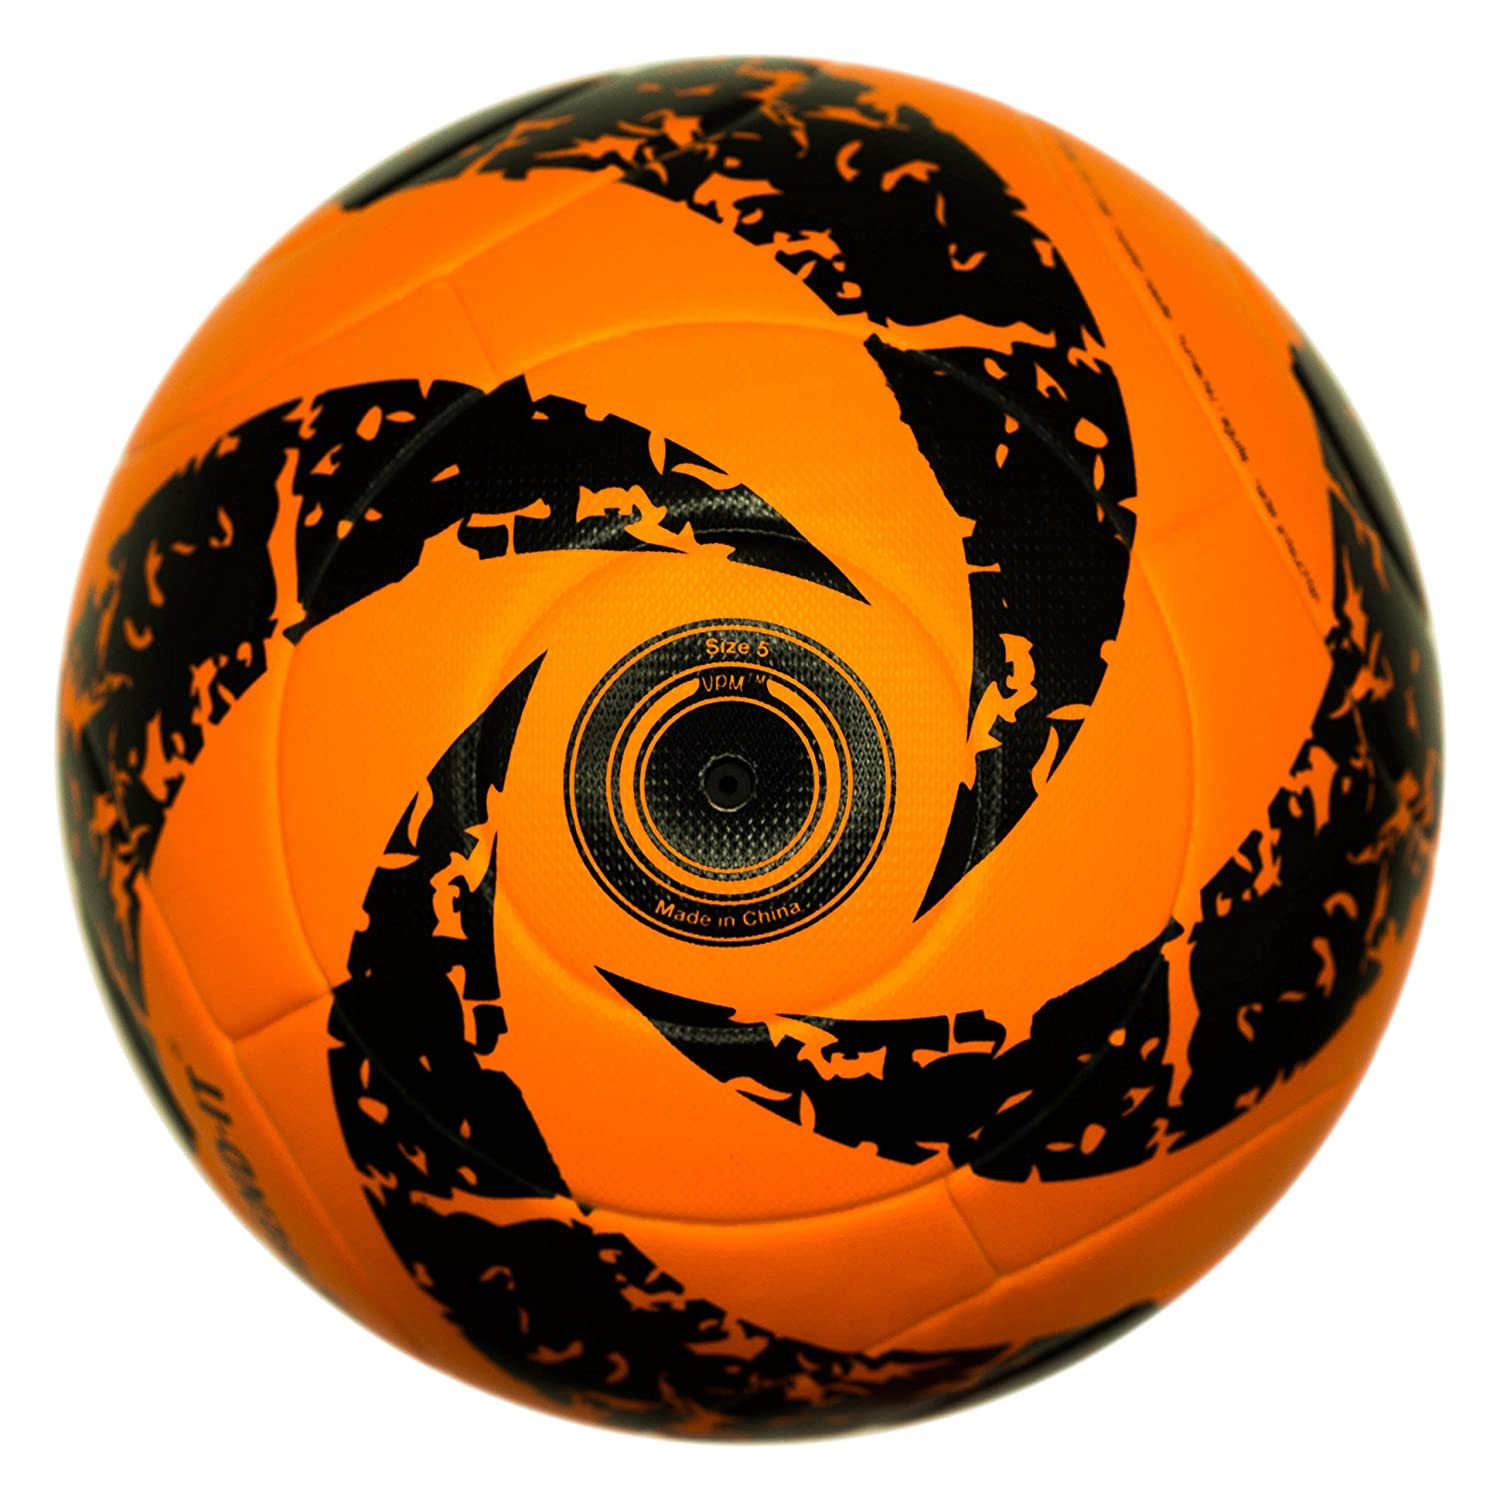 bend-itサッカー、knuckle-it Pro、サッカーボール、Official Match Ball with VPM and VRCテクノロジー B075DT3W6P 5 Orange/Black (Reverse-Curl-It Pro Amber) Orange/Black (Reverse-Curl-It Pro Amber) 5